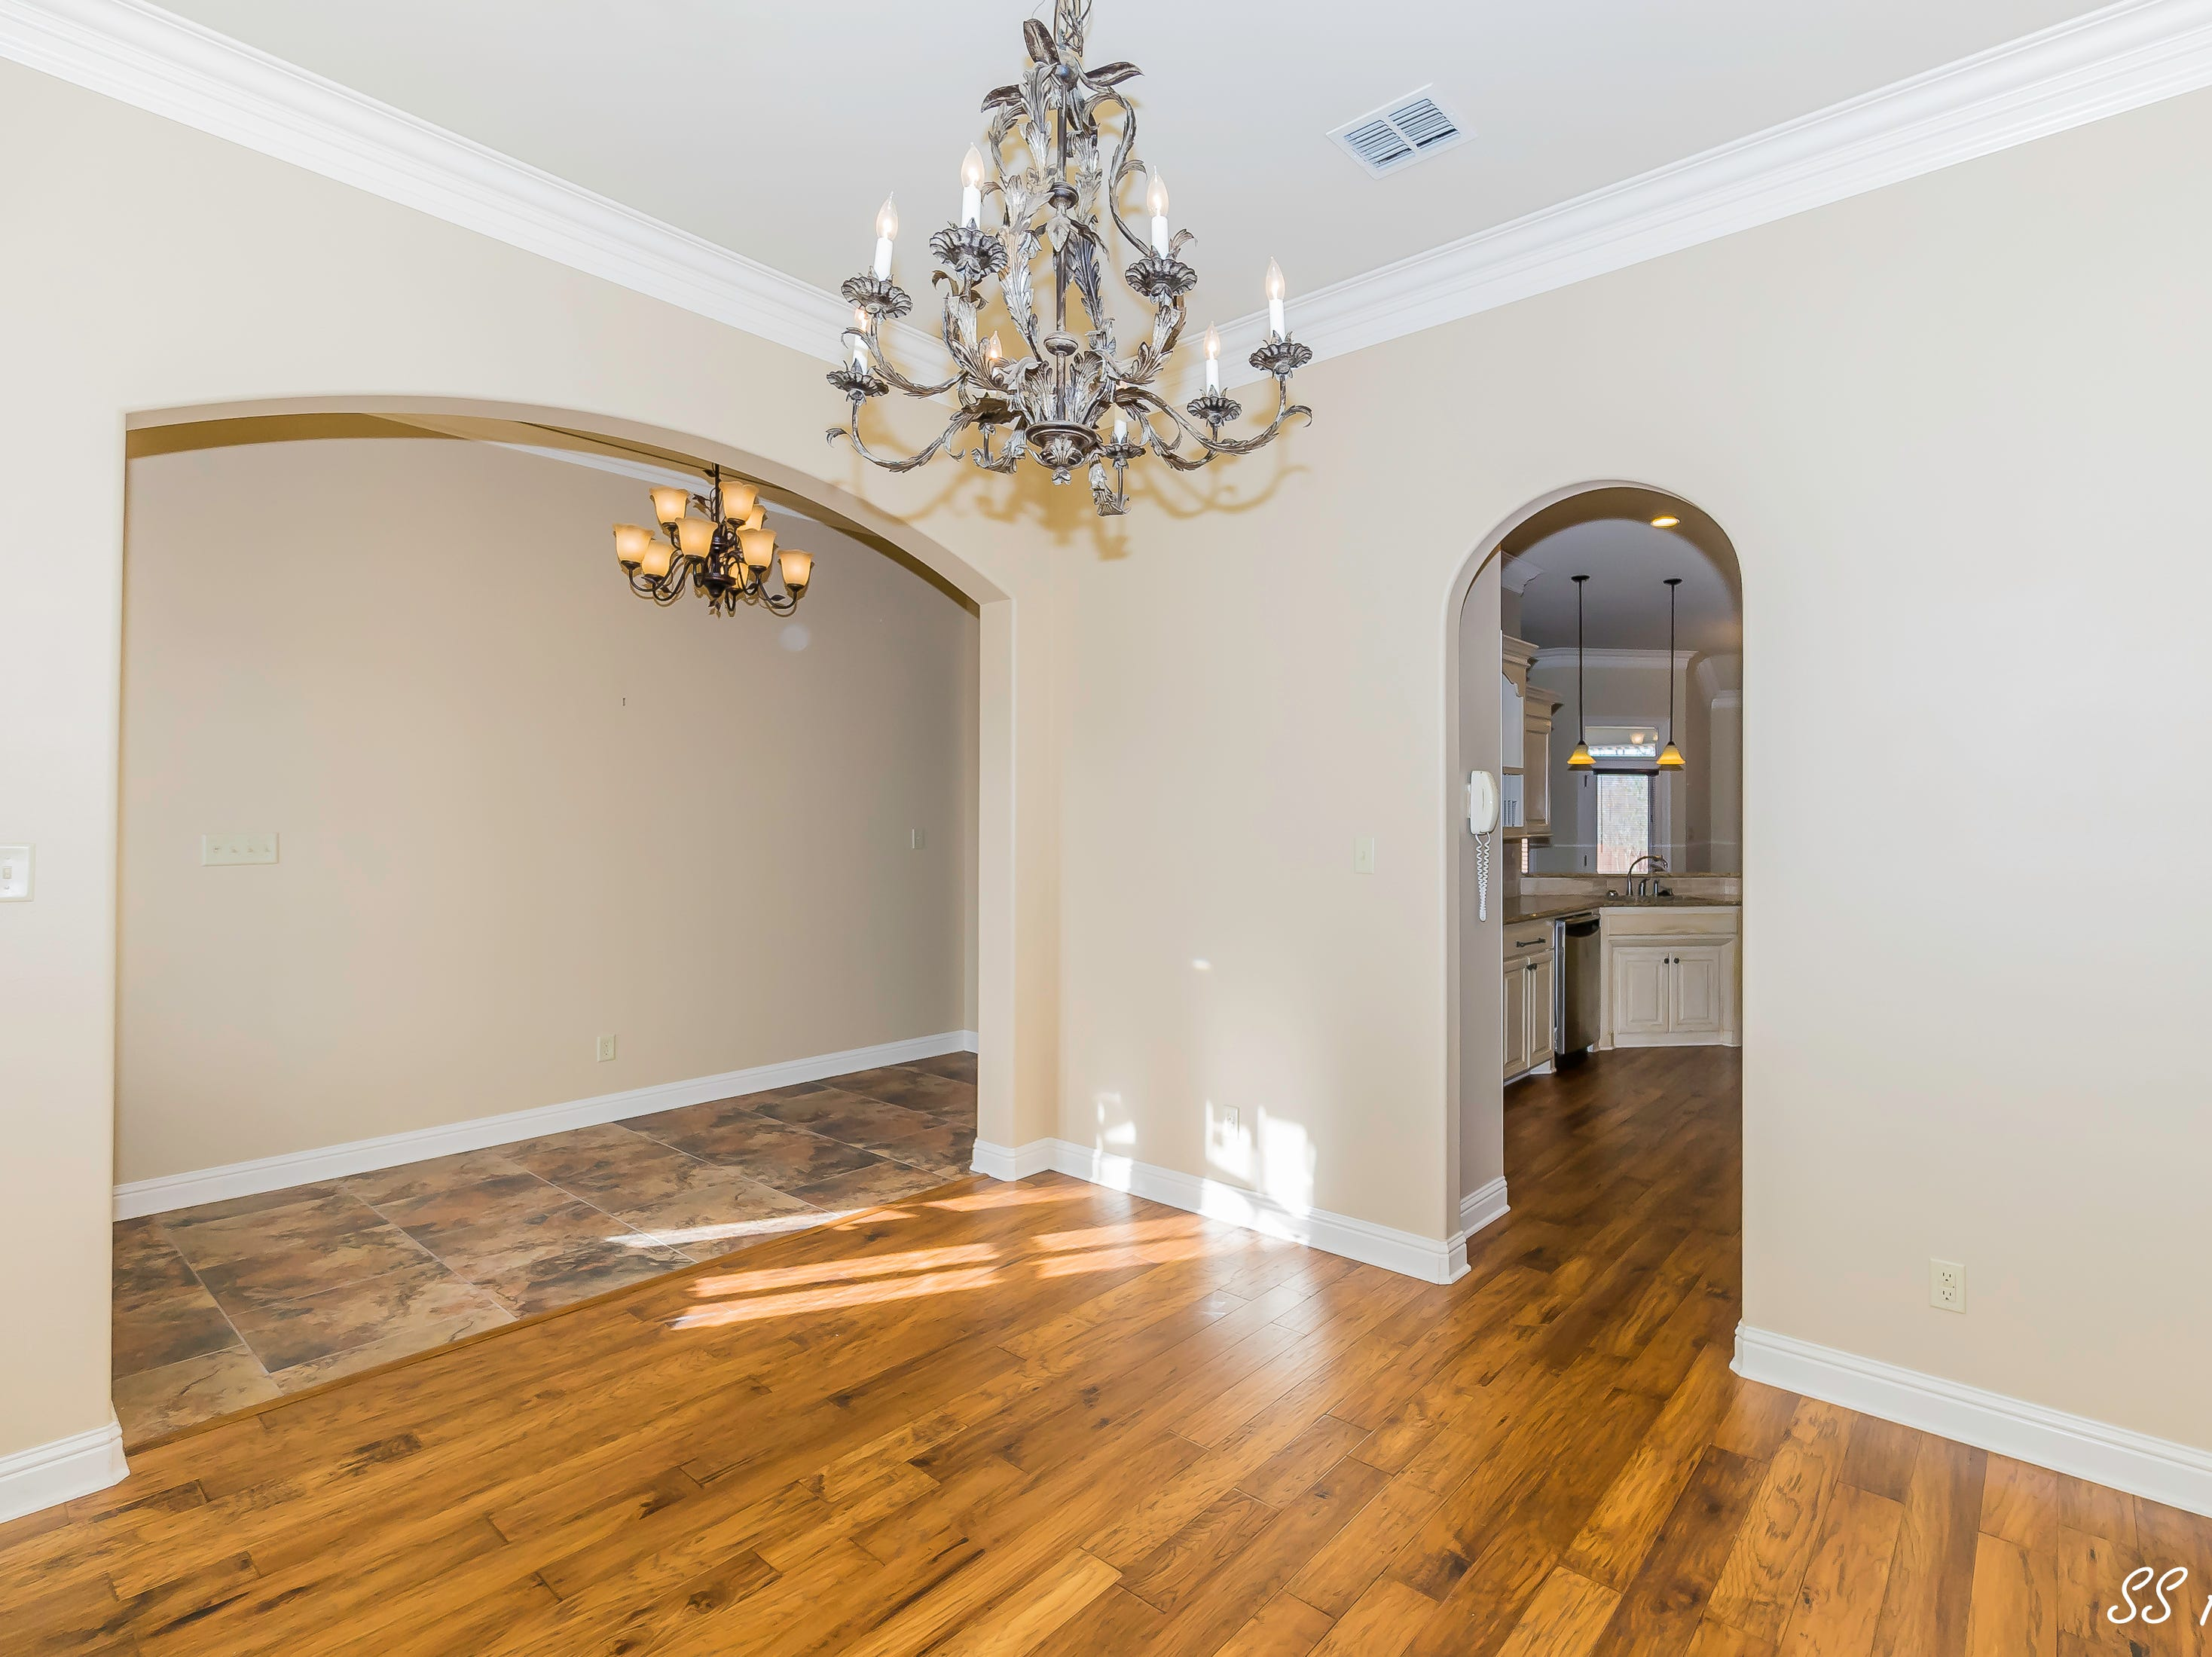 2480 Churchill Drive,   Bossier City  Price: $320,000  Details: 4 bedrooms, 3 bathrooms, 2,364 square feet  Special features: Exquisite home in Carriage Oak Crossing with designer colors, large master and bath with hidden TV.  Contact: Christine Dowdall, 469-3877